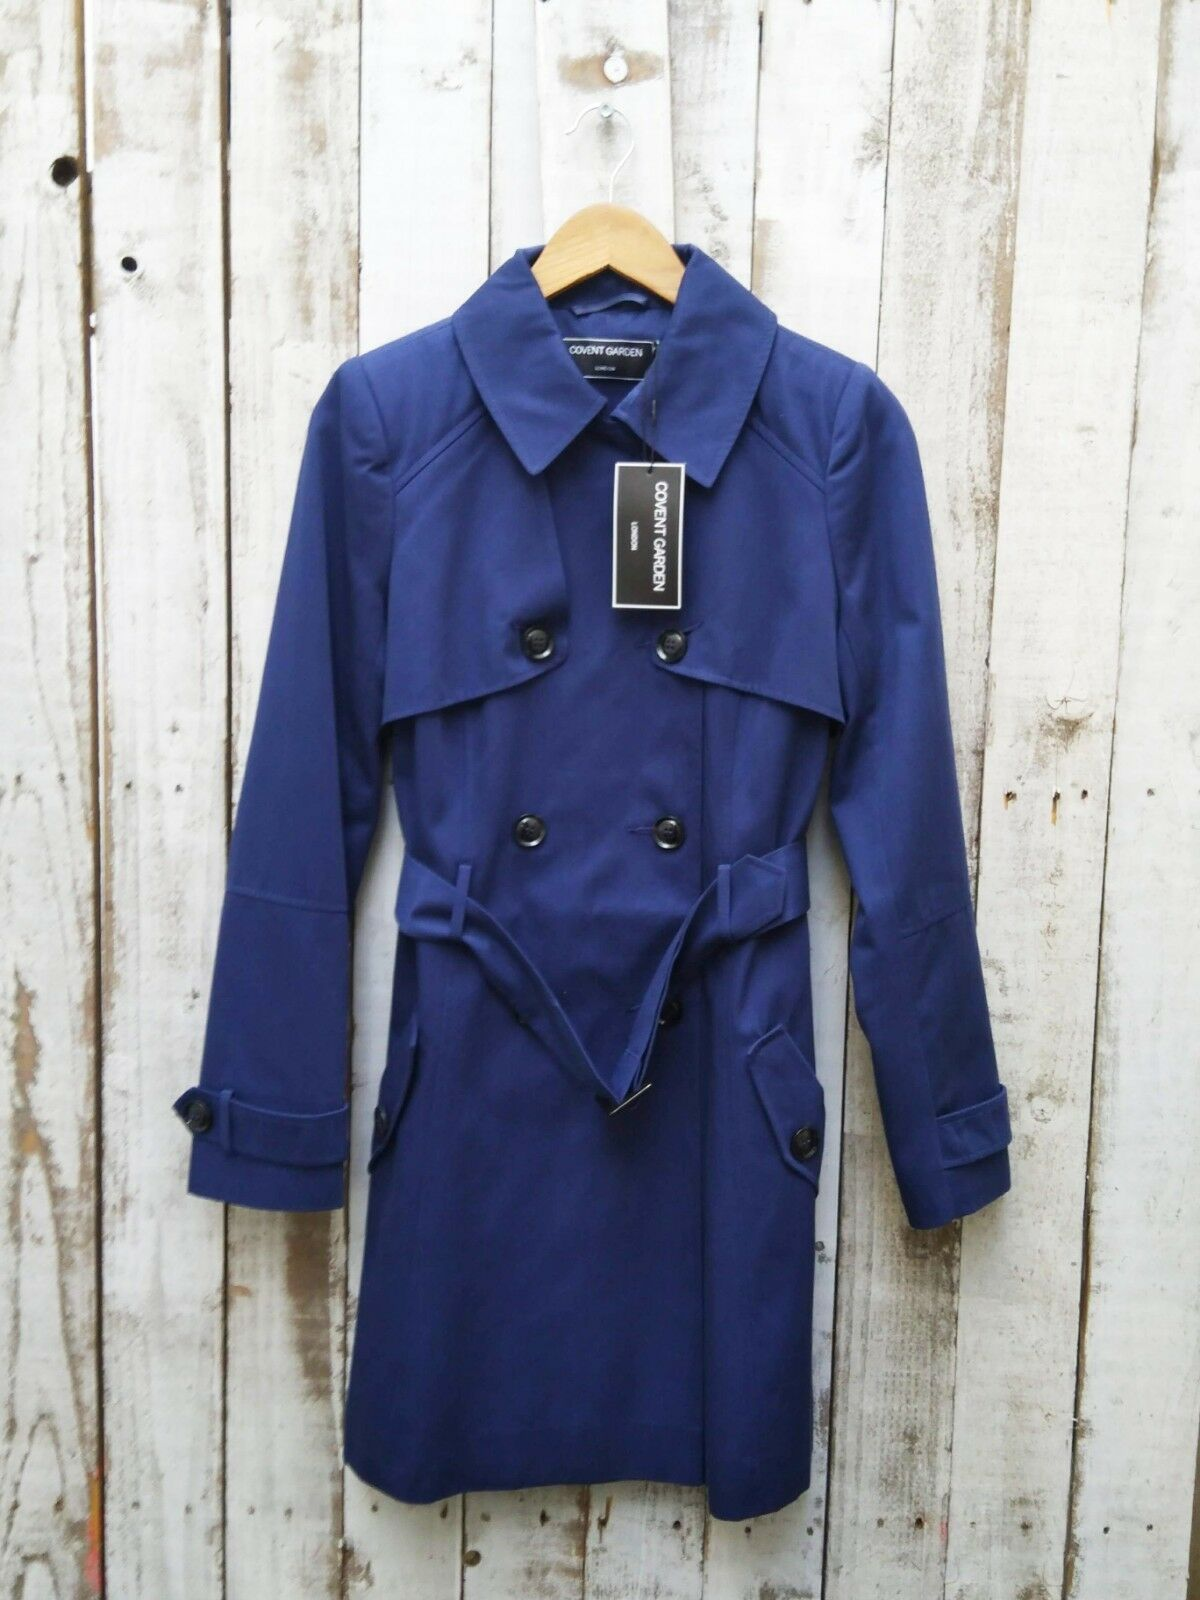 Covent Garden Classic Trench Coat In bluee Size  10   Was Selling At Asos